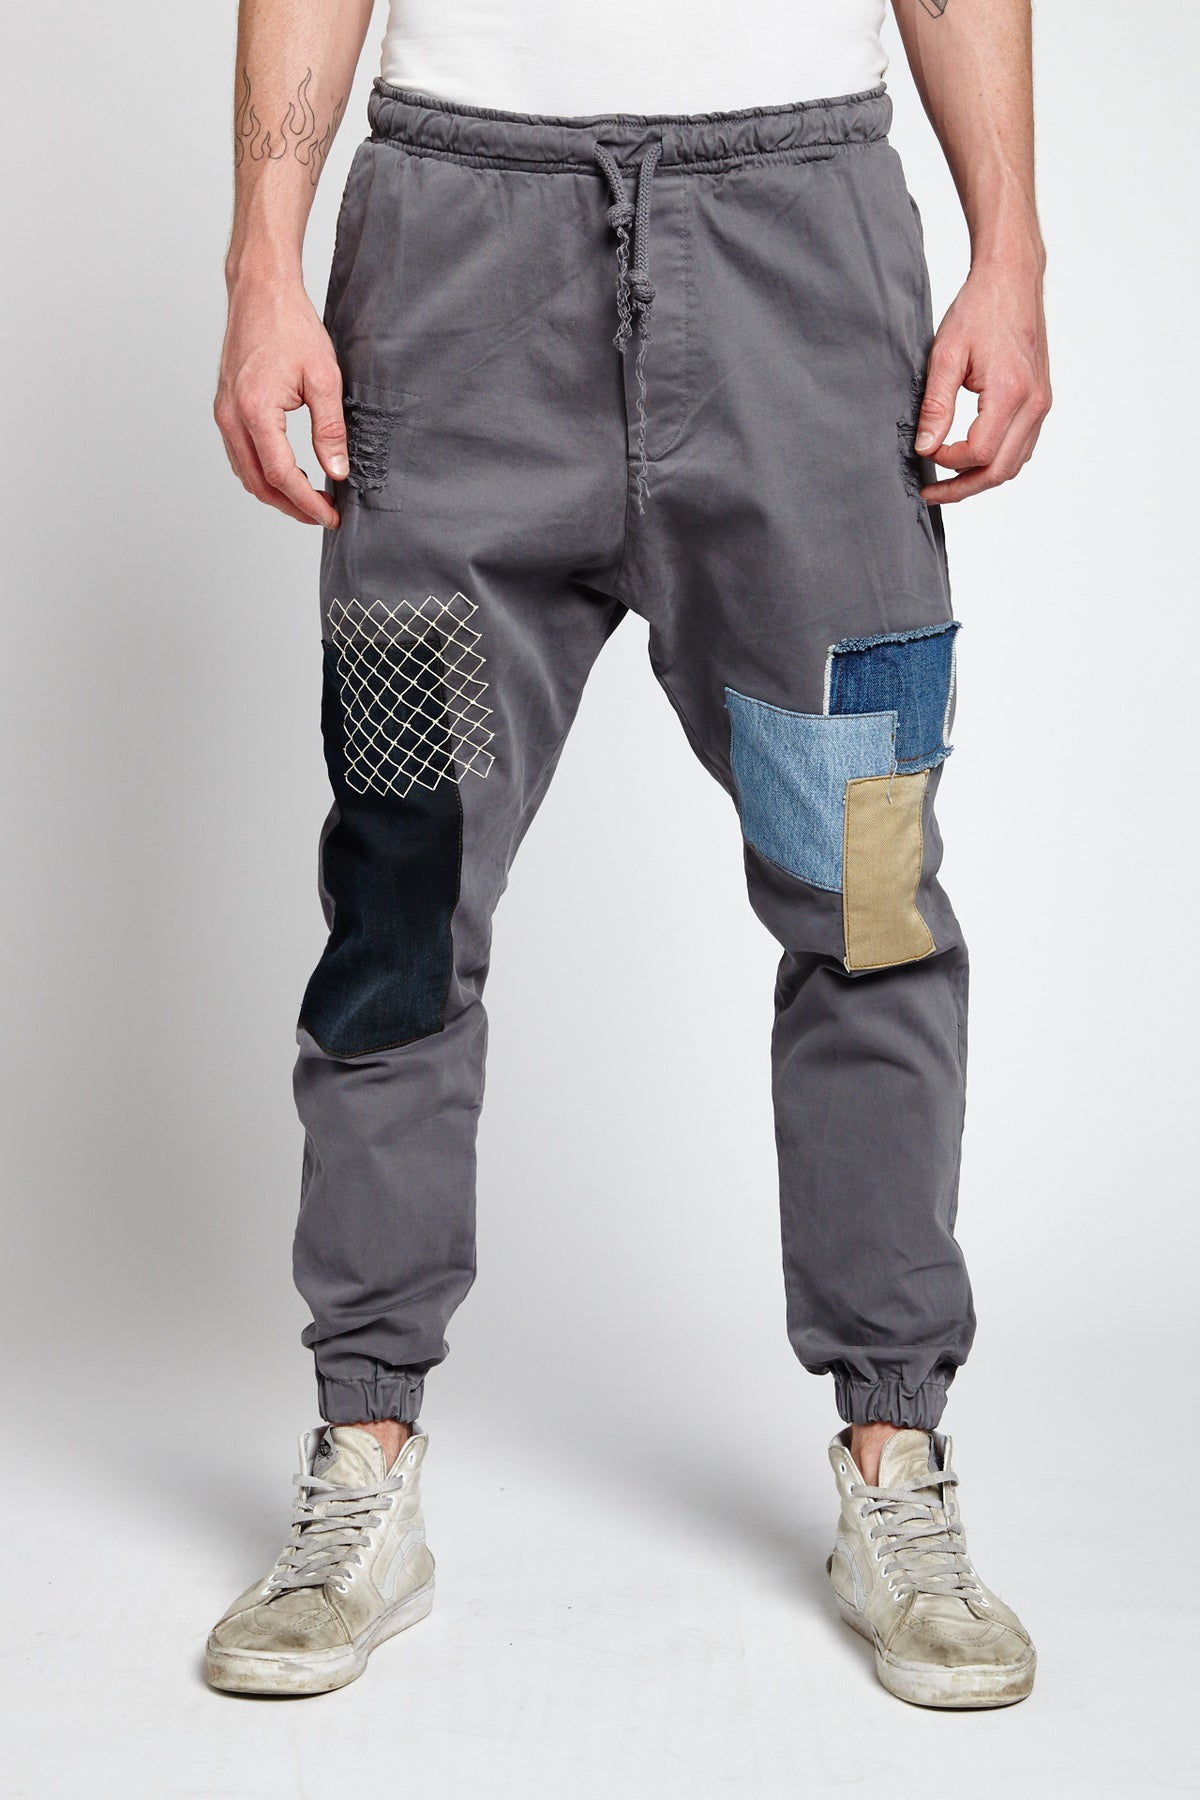 RETE GREY COTTON SMALL JOGGER PANTS-BOTTOMS-Mundane Official-29-GRAY-Mundane Official